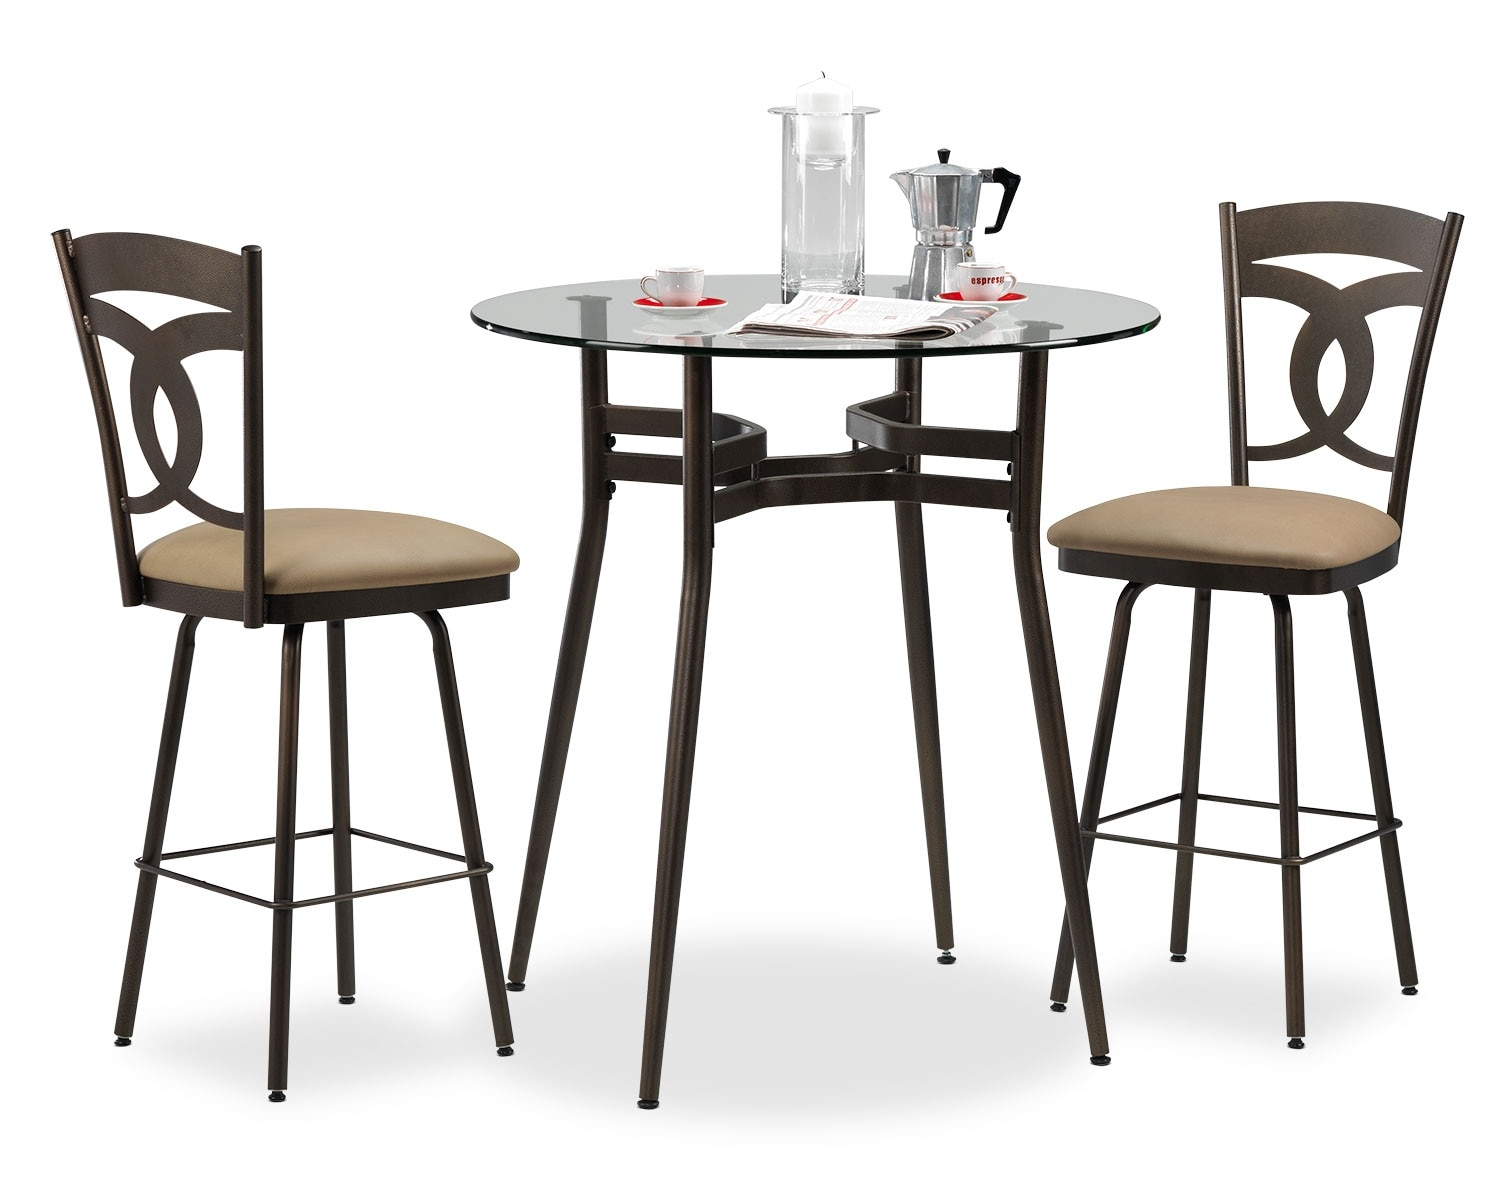 Anais 3-Piece Dinette Set - Beige and Brown